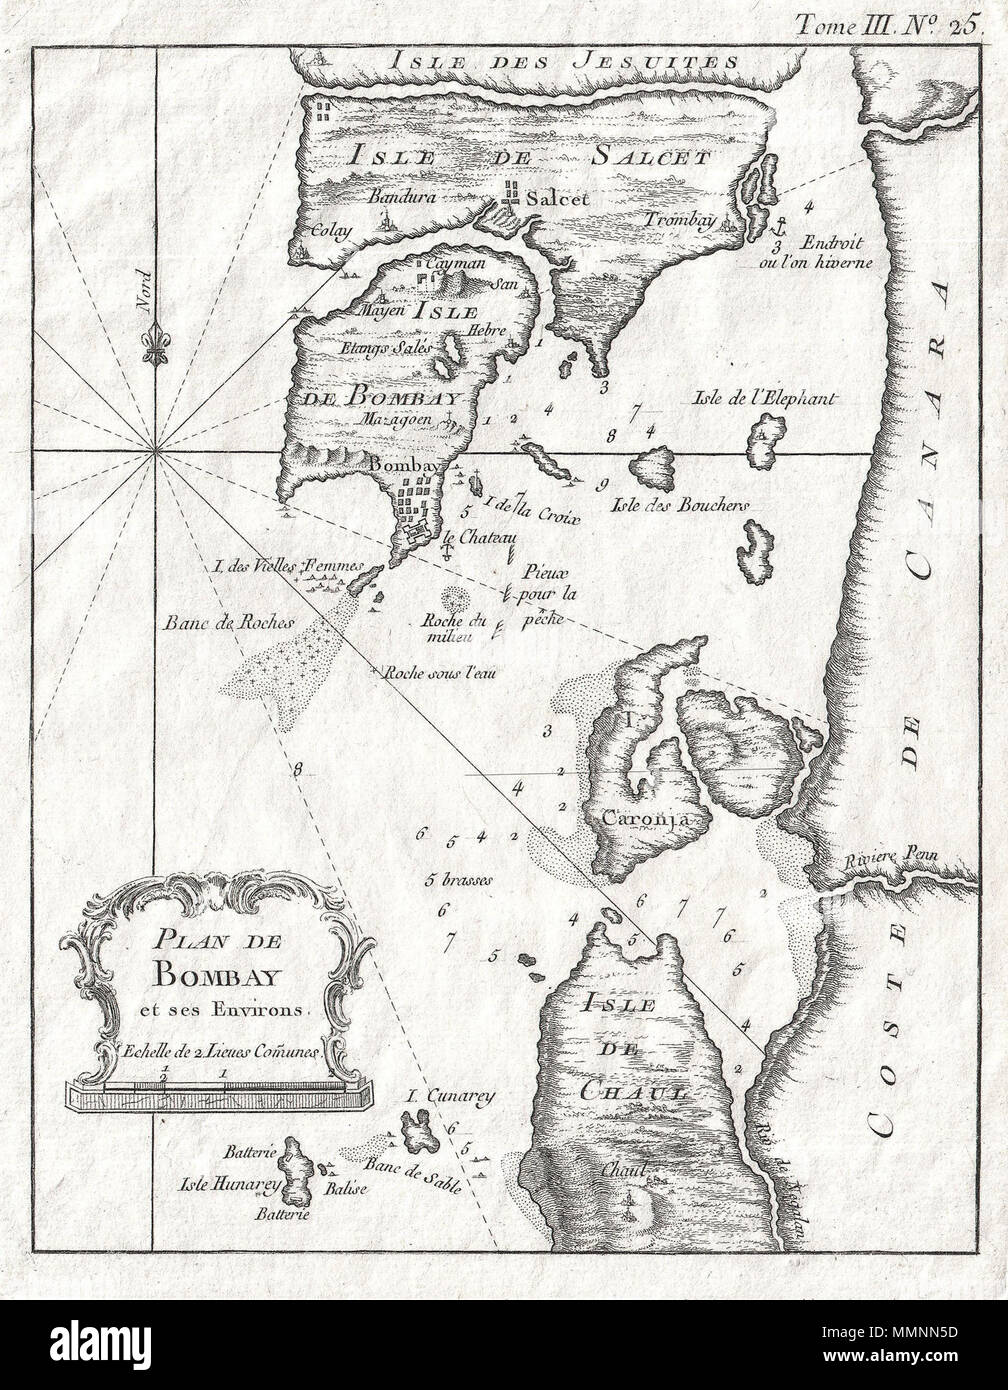 .  English: An extremely attractive and rare 1764 map of Bombay or Mumbai, India by J. N. Bellin. Depicted the peninsula of Bombay as it was in the 1700s – divided into several small islands including Salcet, Bombay, and the Isle of the Jesuits. Shows the city and fort of Bombay at the southern tip of Bombay Island. Also shows the villages of Salcet, Cayman, Mayen, Colay, Bandura and Trombay. Includes the coast of mainland India from the Negalan River northward past the River Penn to what is today Panvel Creek. Offers considerable offshore detail including depth soundings around Bombay Harbor  - Stock Image